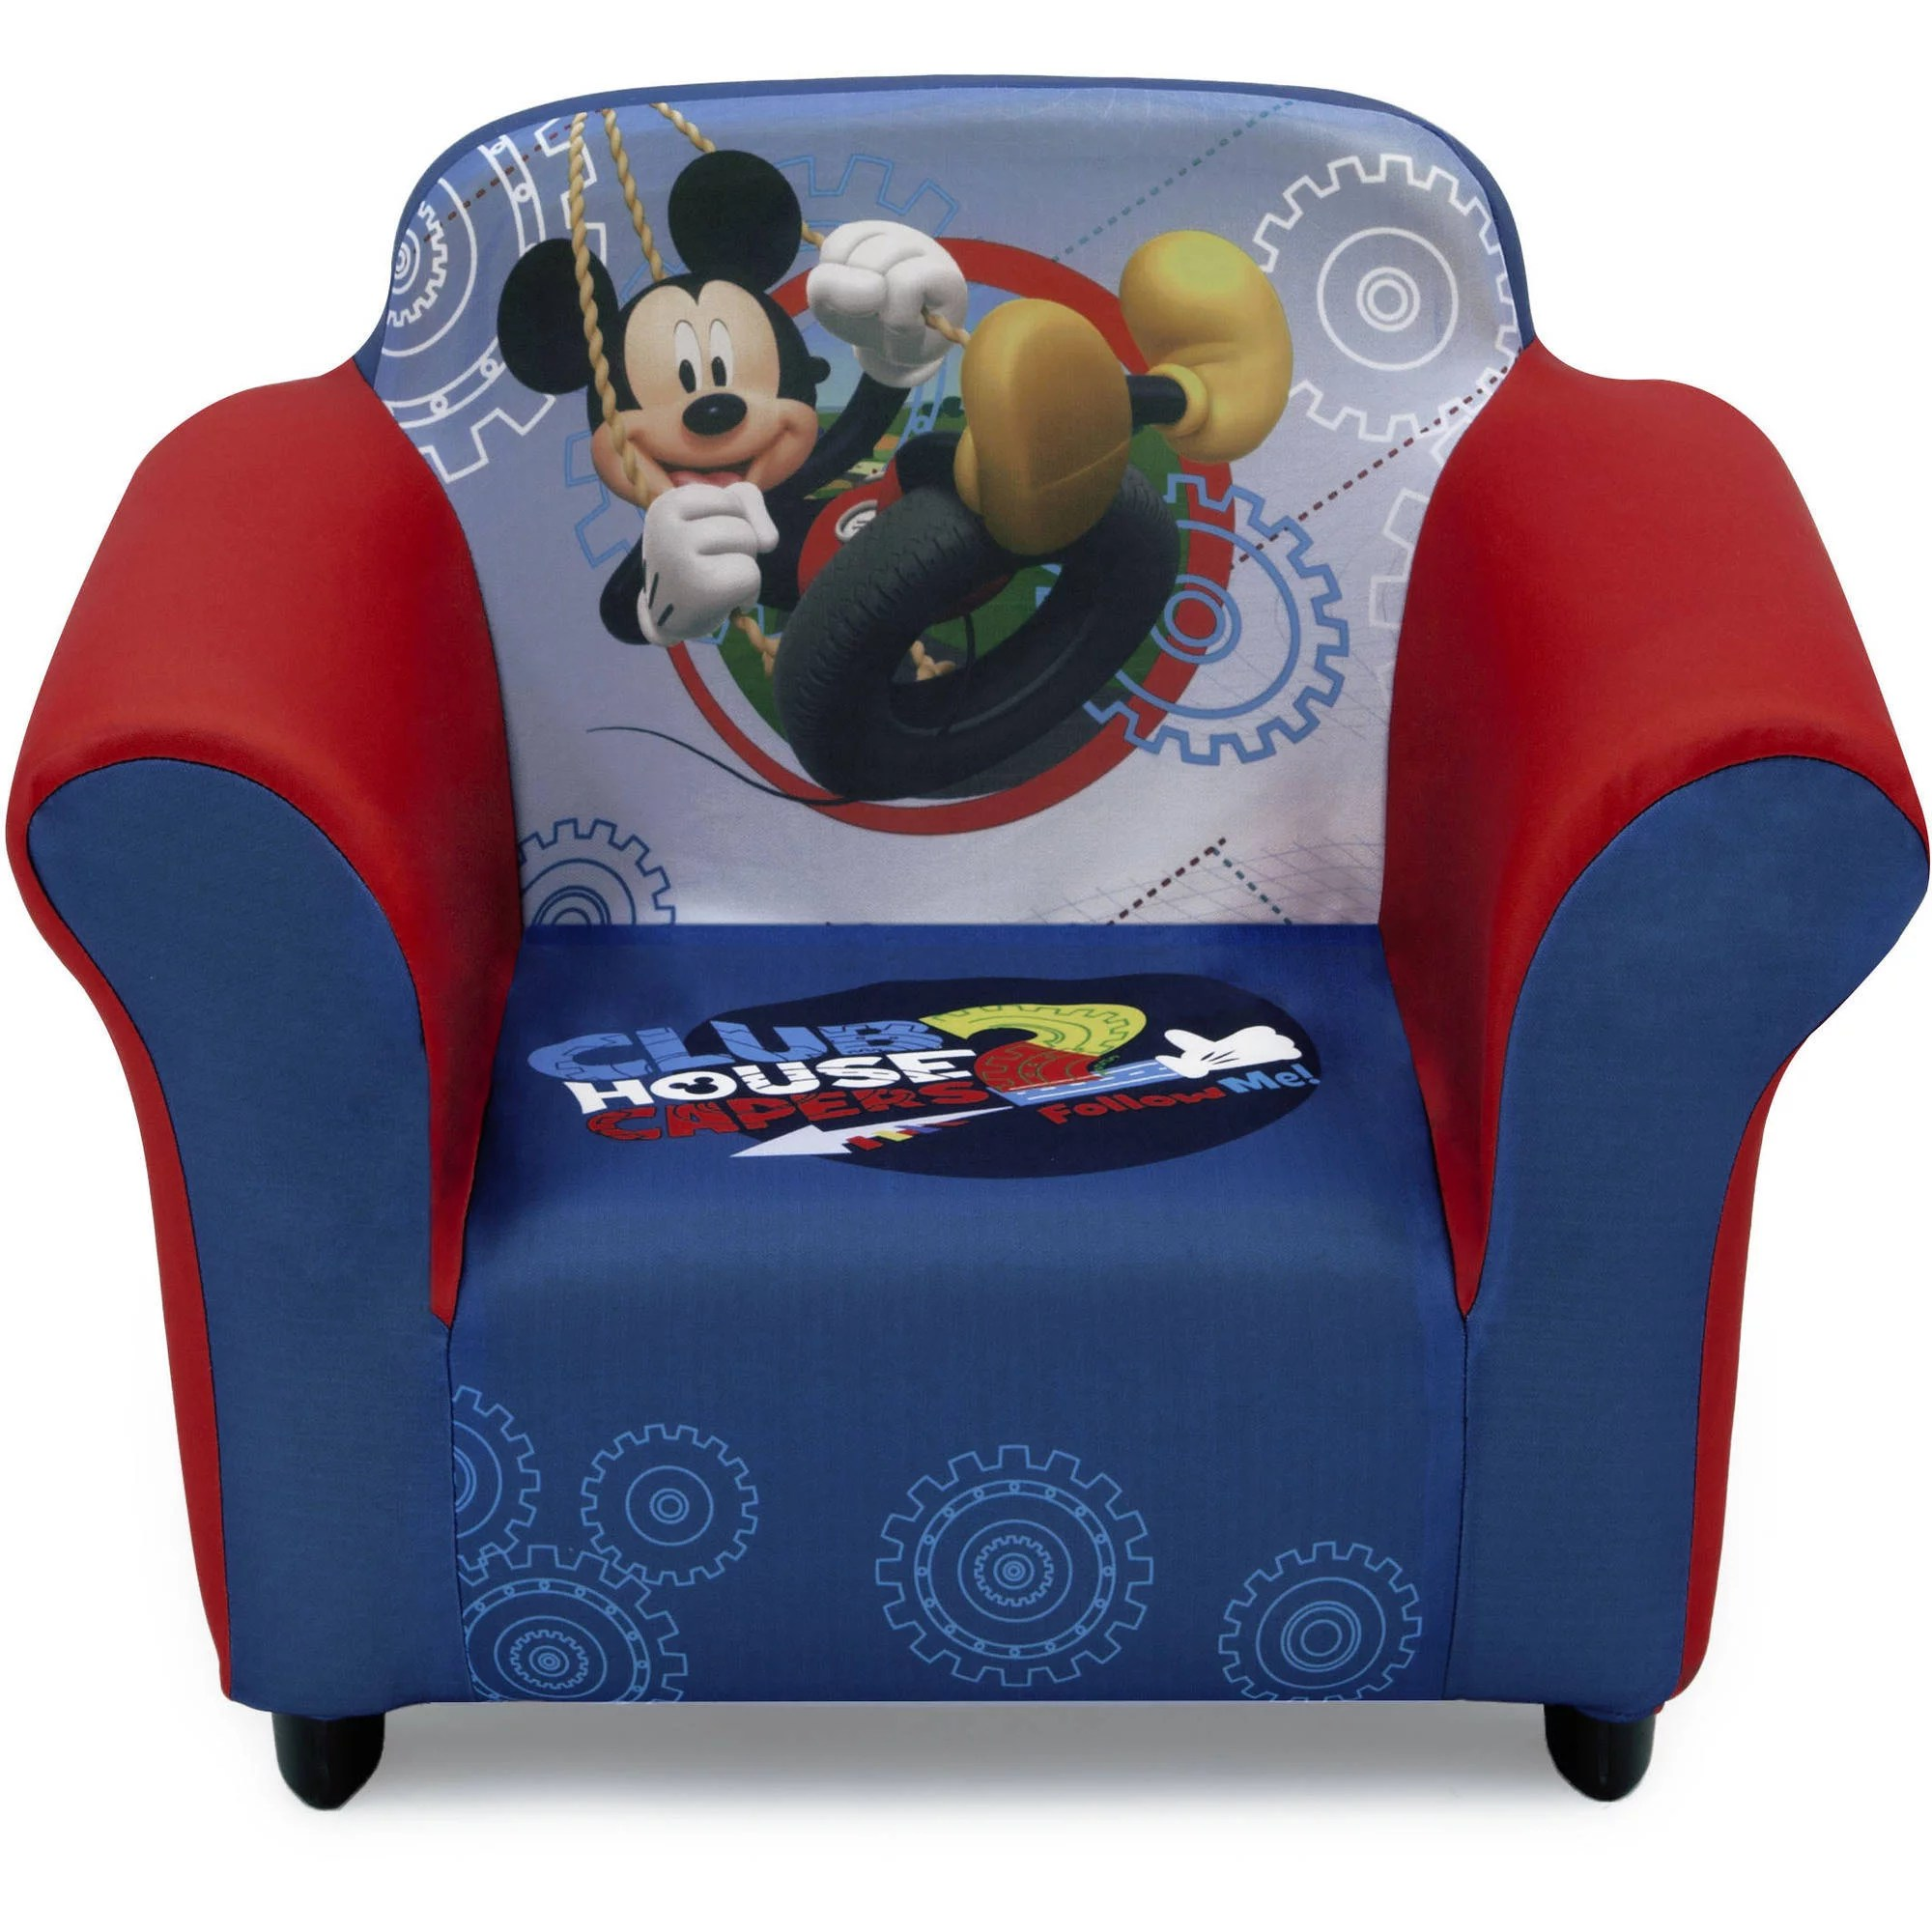 Upholstered Children's Chairs Disney Mickey Mouse Kids Upholstered Chair With Sculpted Plastic Frame By Delta Children